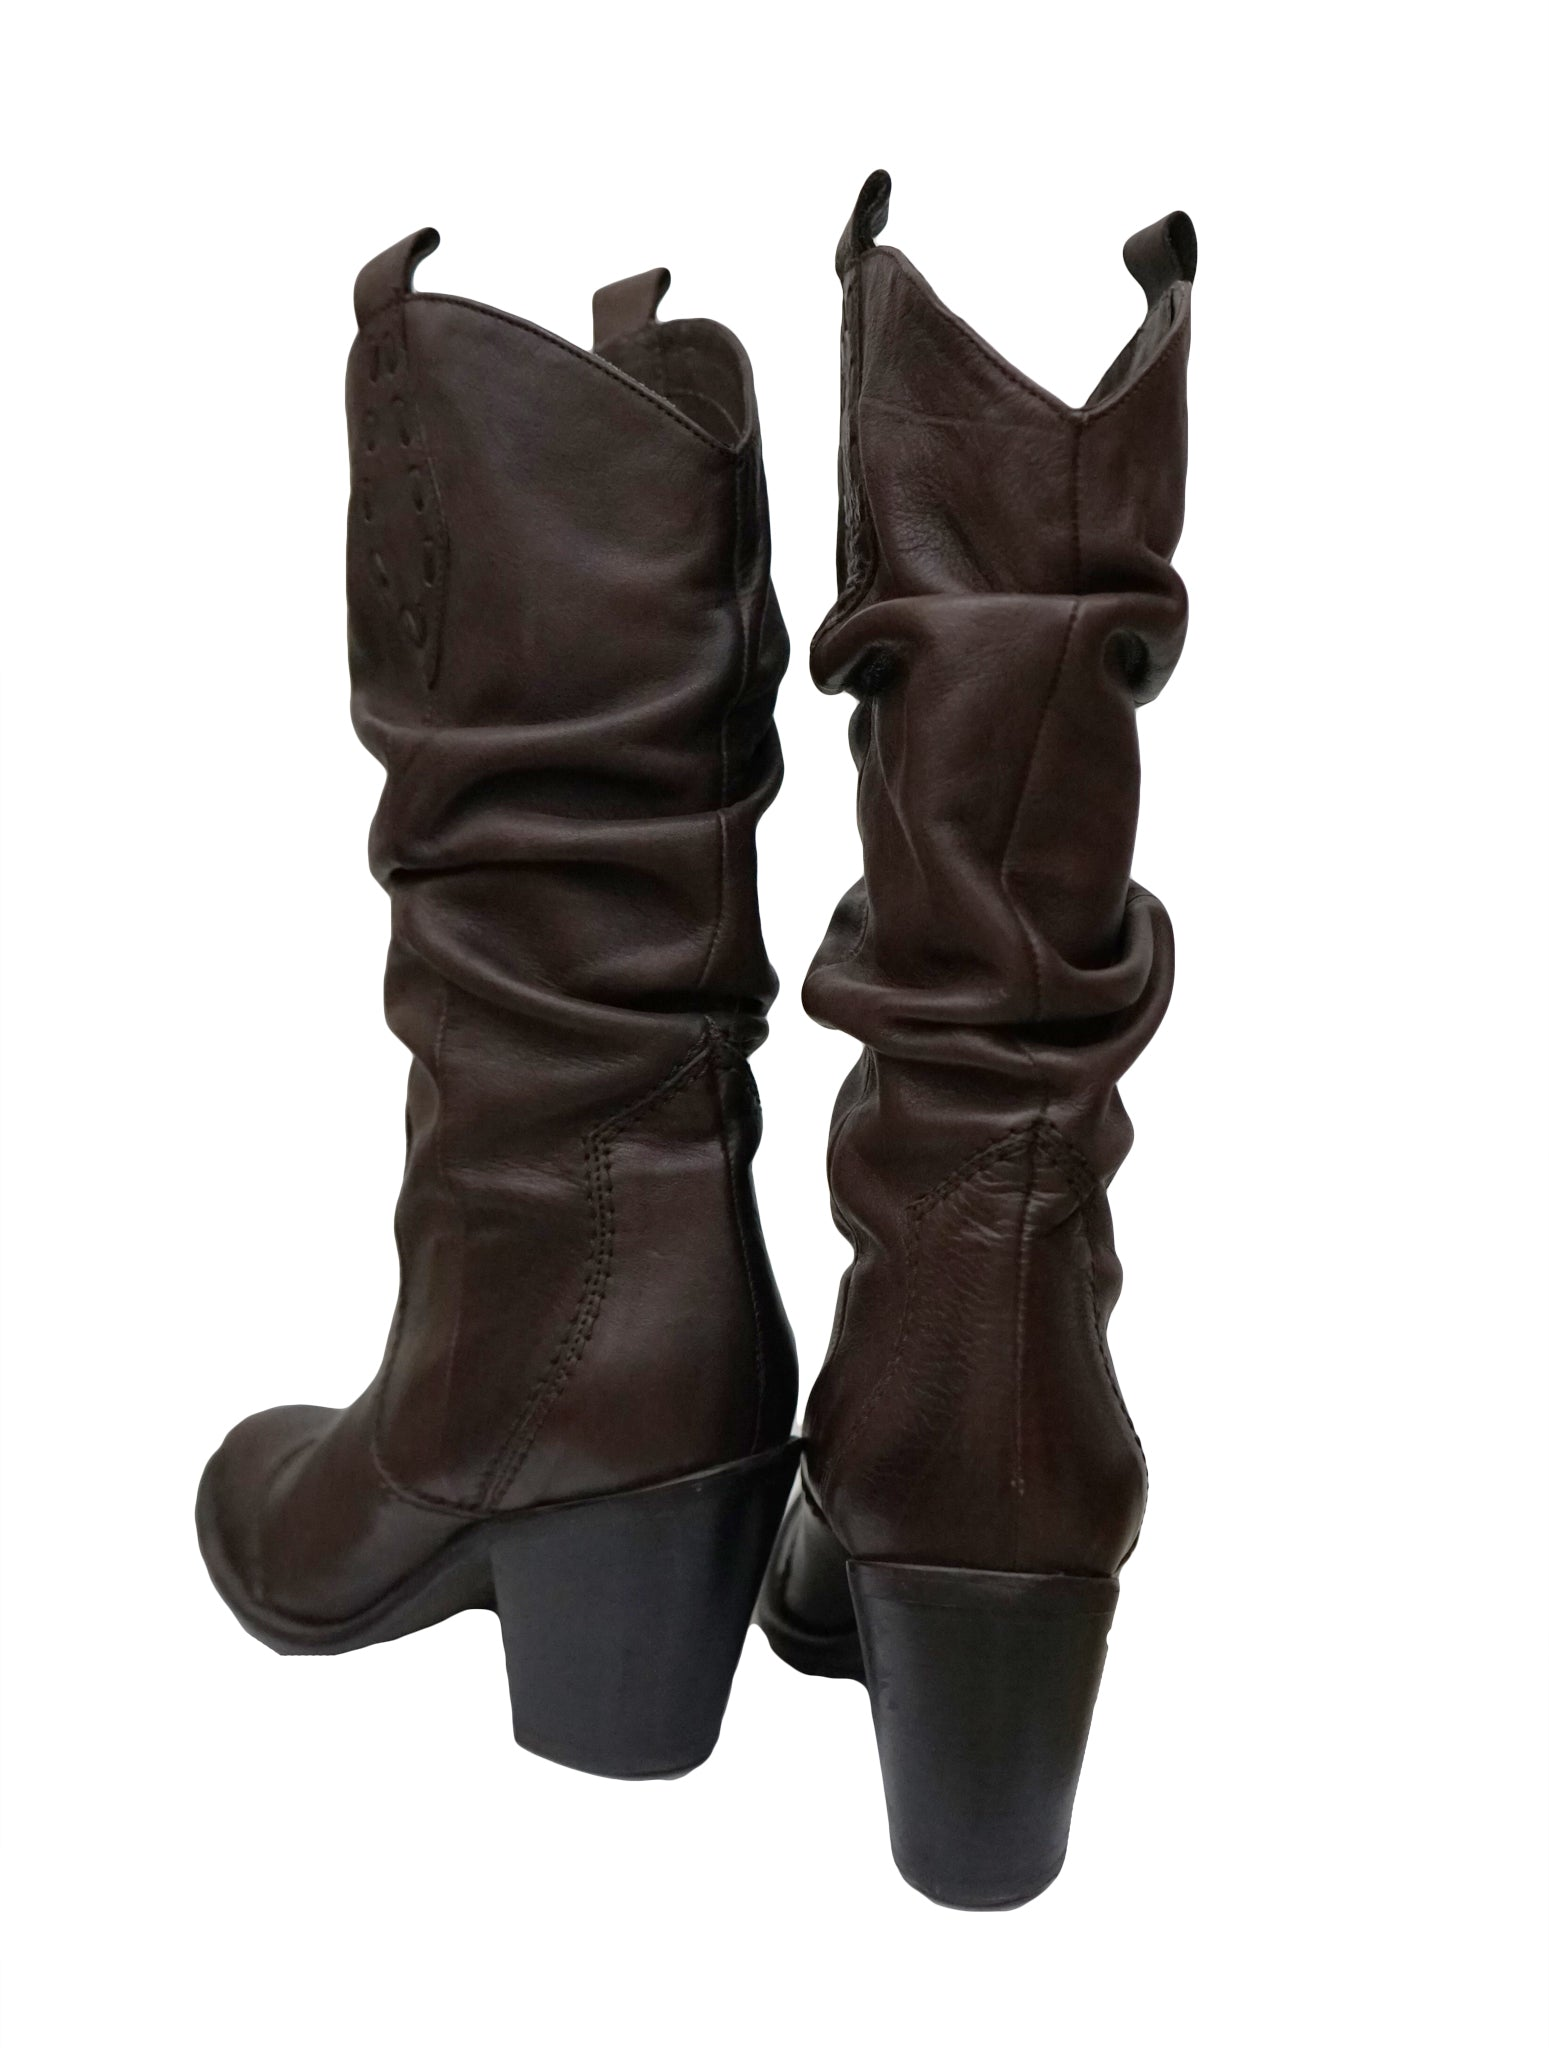 DARK BROWN LEATHER BOOTS